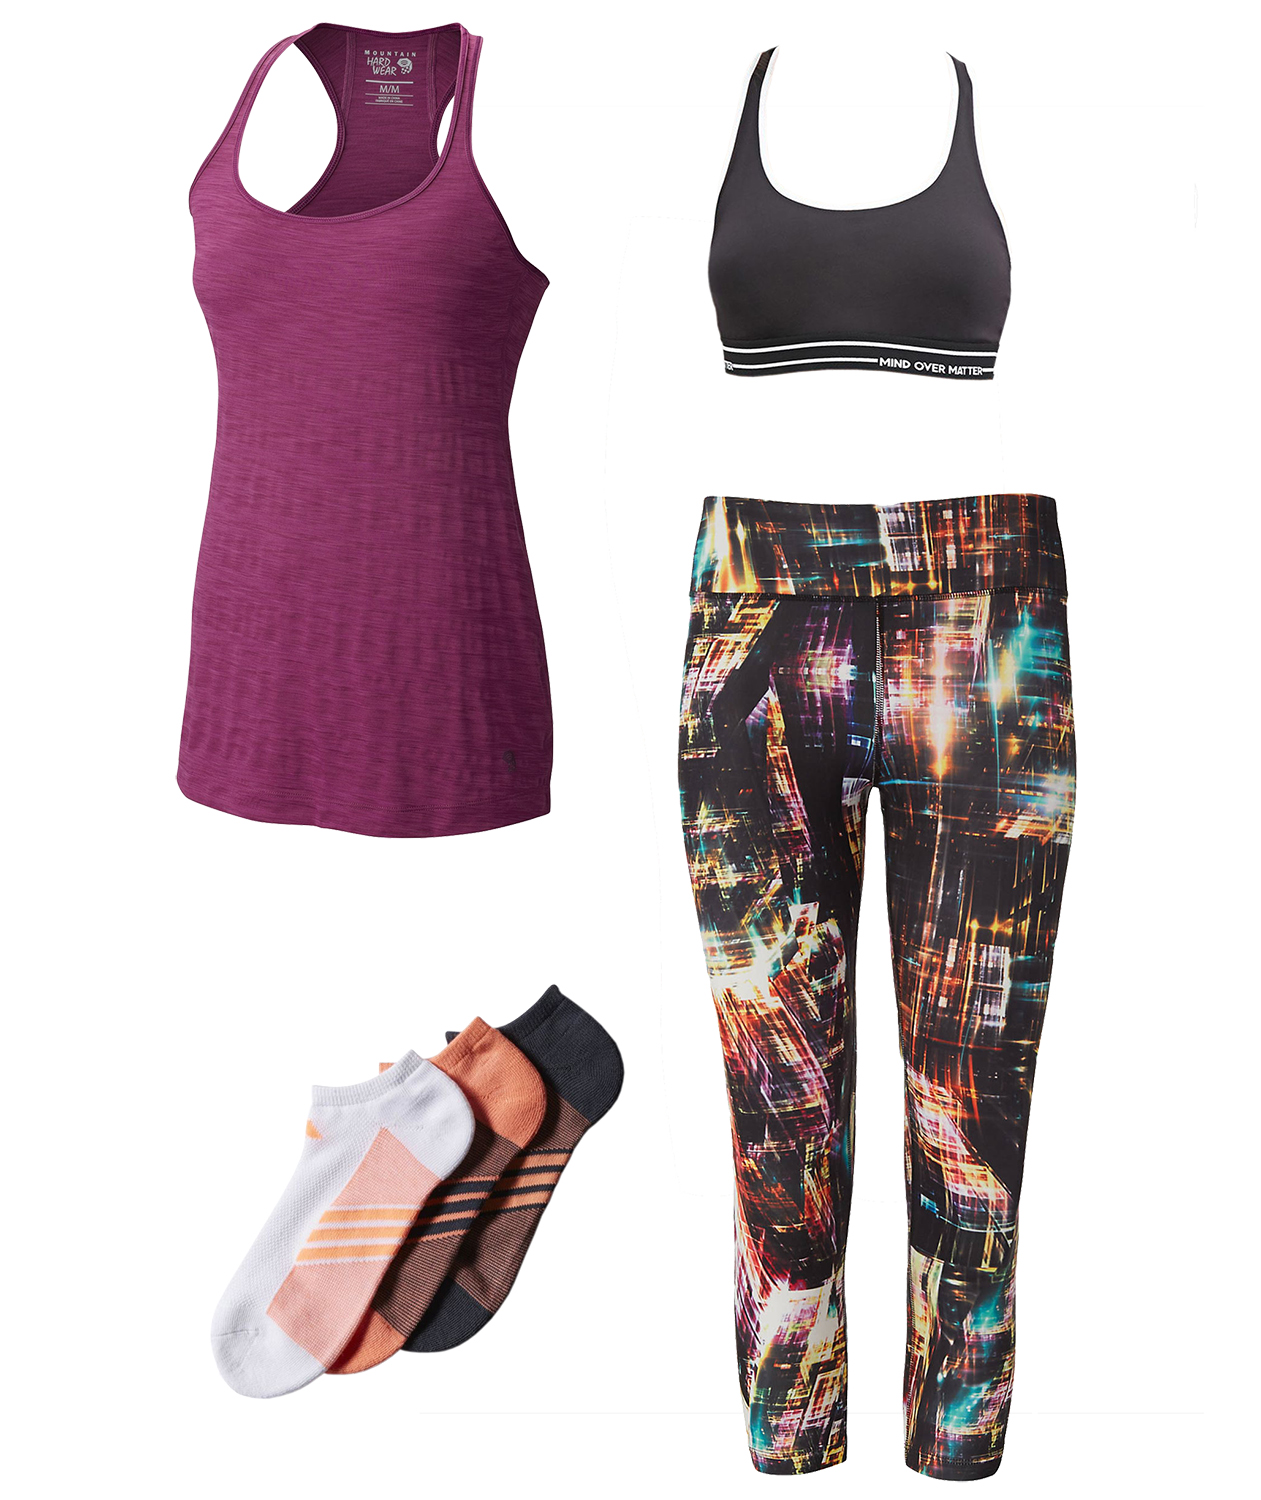 Spin City workout outfit